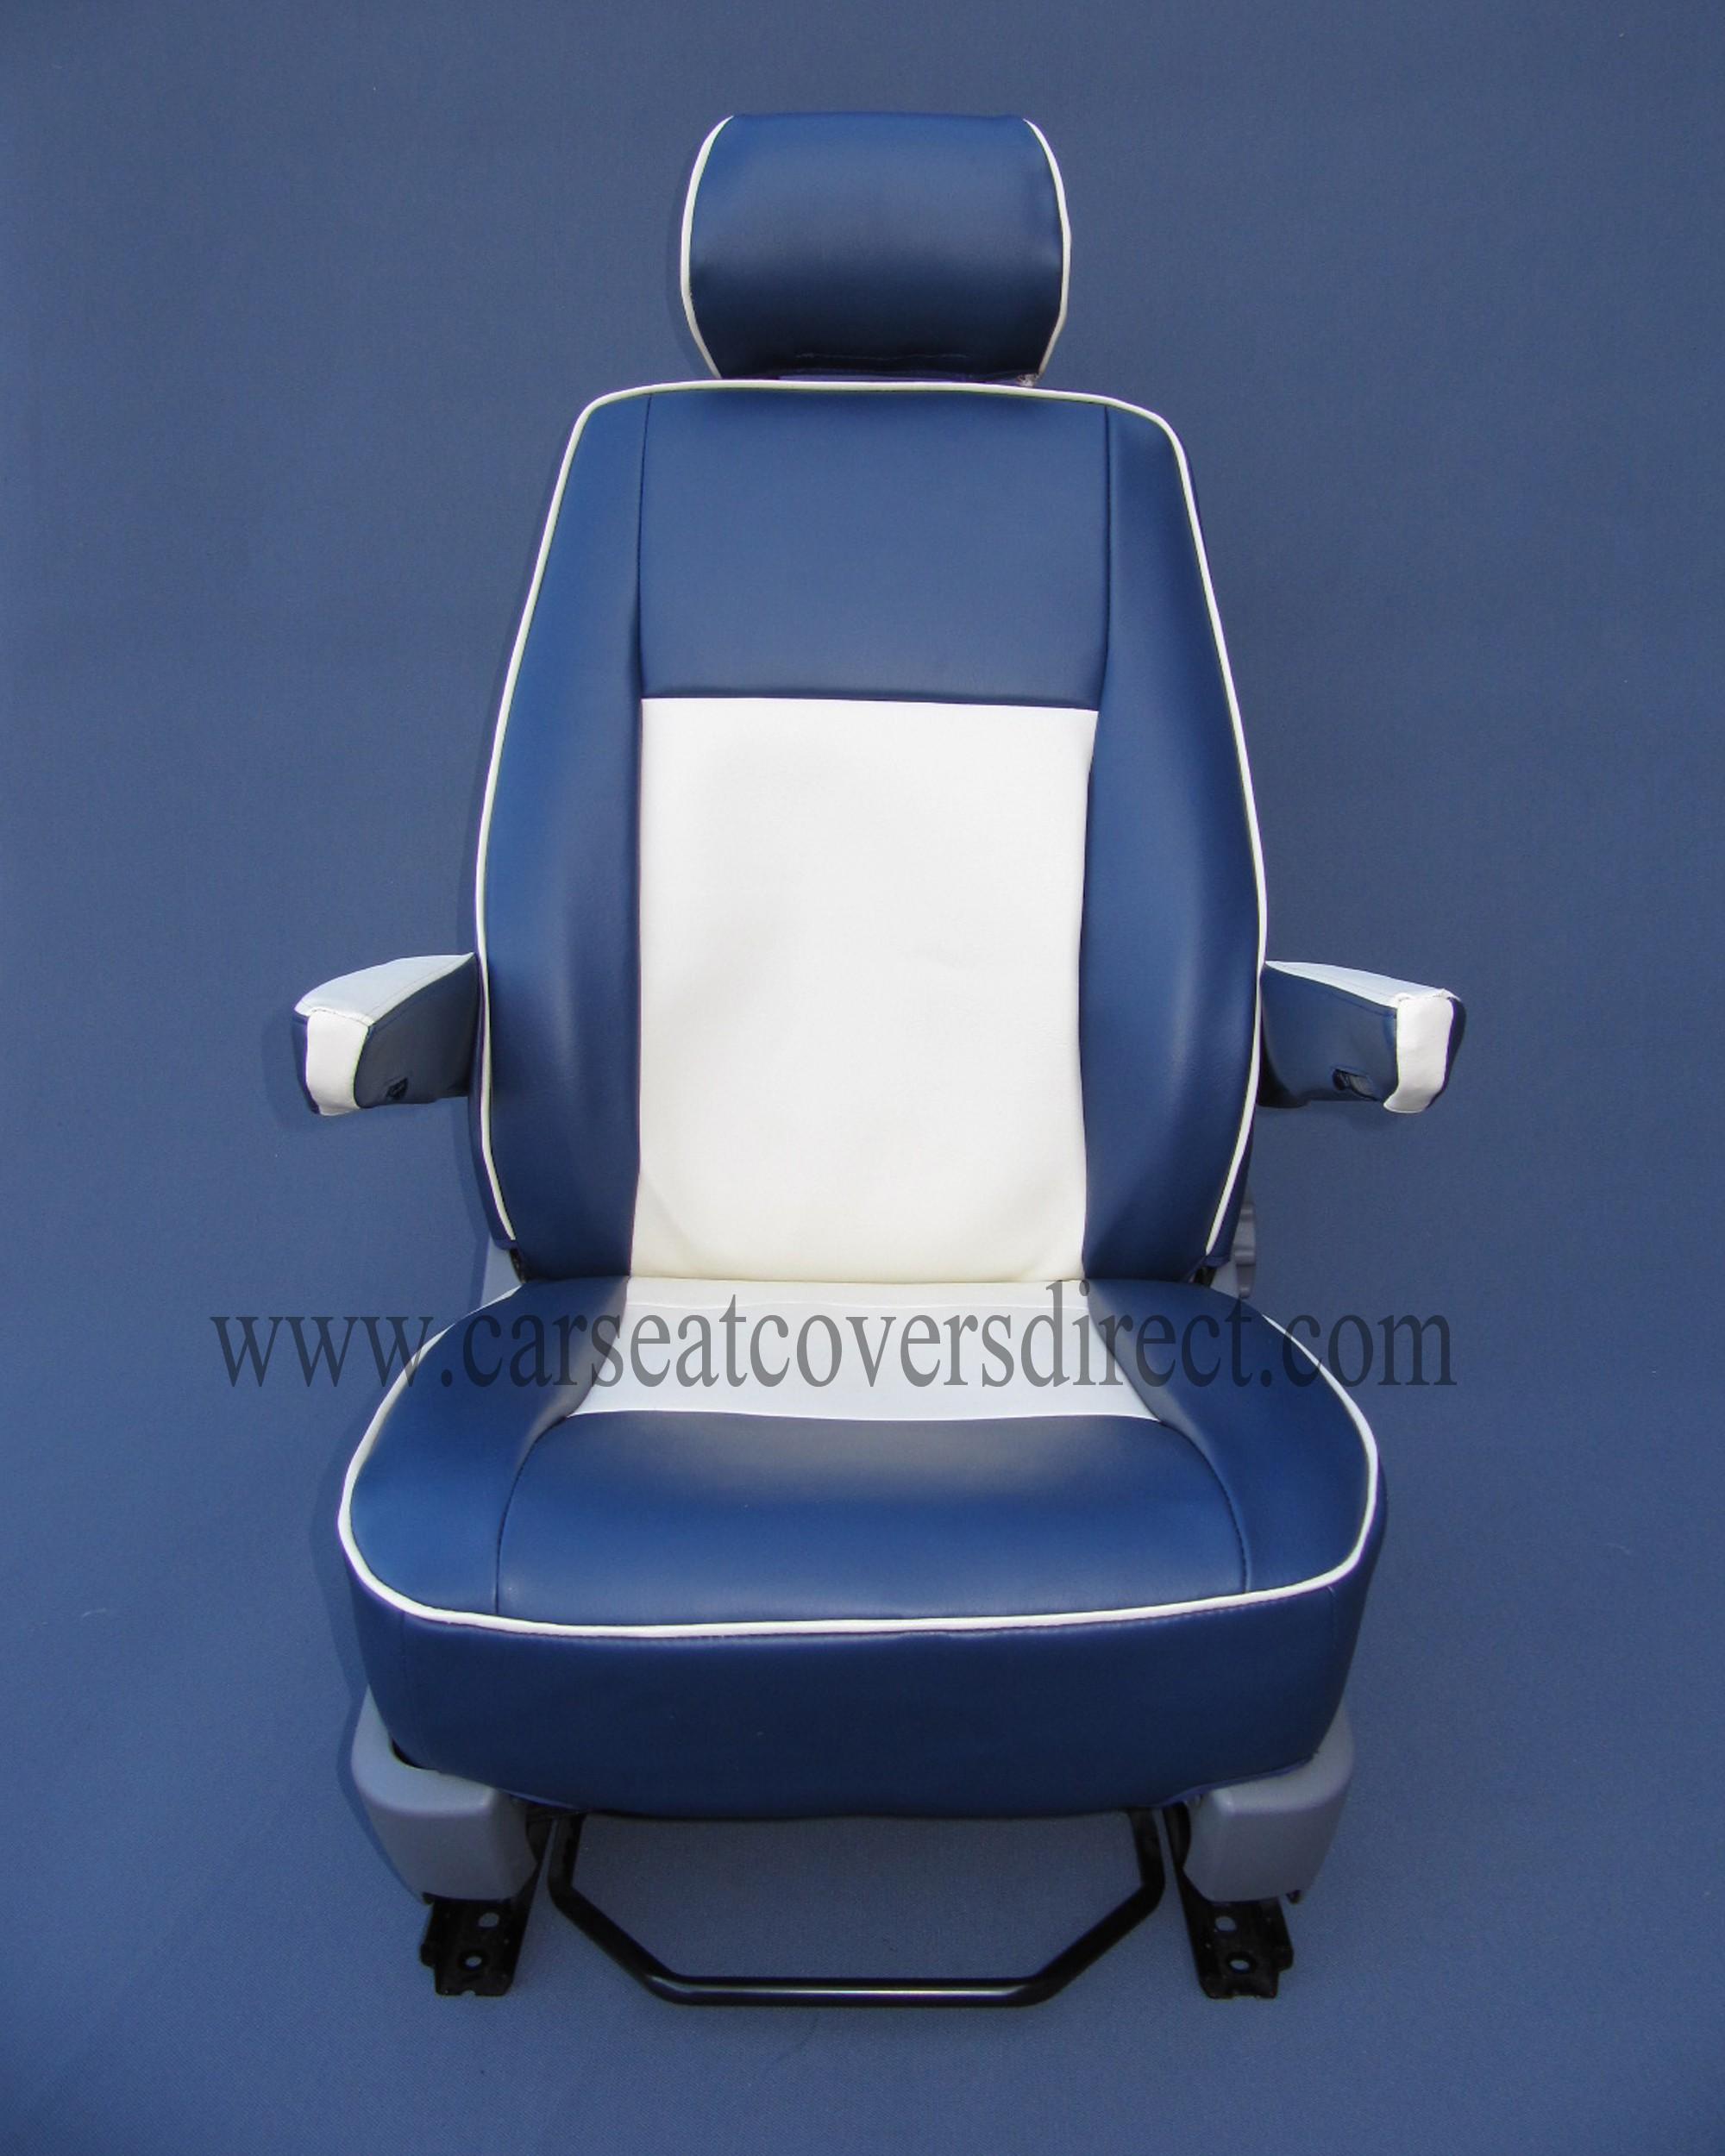 Vw T5 Seat Covers Blue Amp White Car Seat Covers Direct